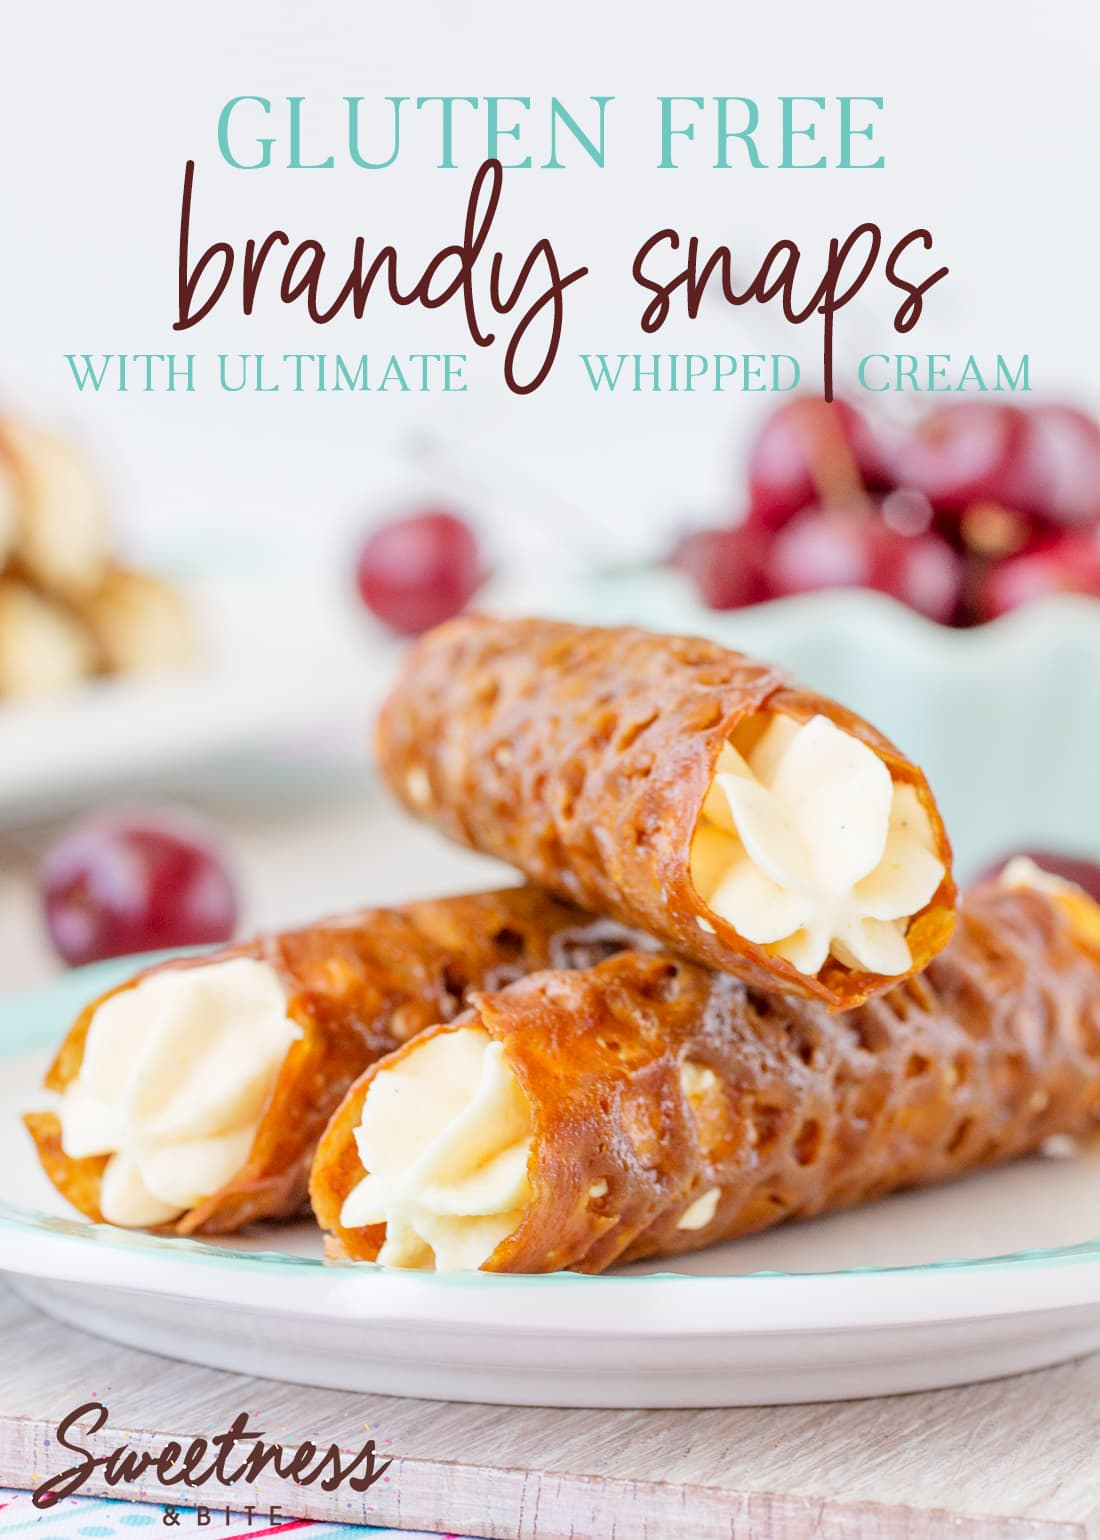 Gluten Free Brandy Snaps - simple recipe for these lacy, crunchy and spicy gluten free biscuit tubes filled with silky Ultimate Whipped Cream.